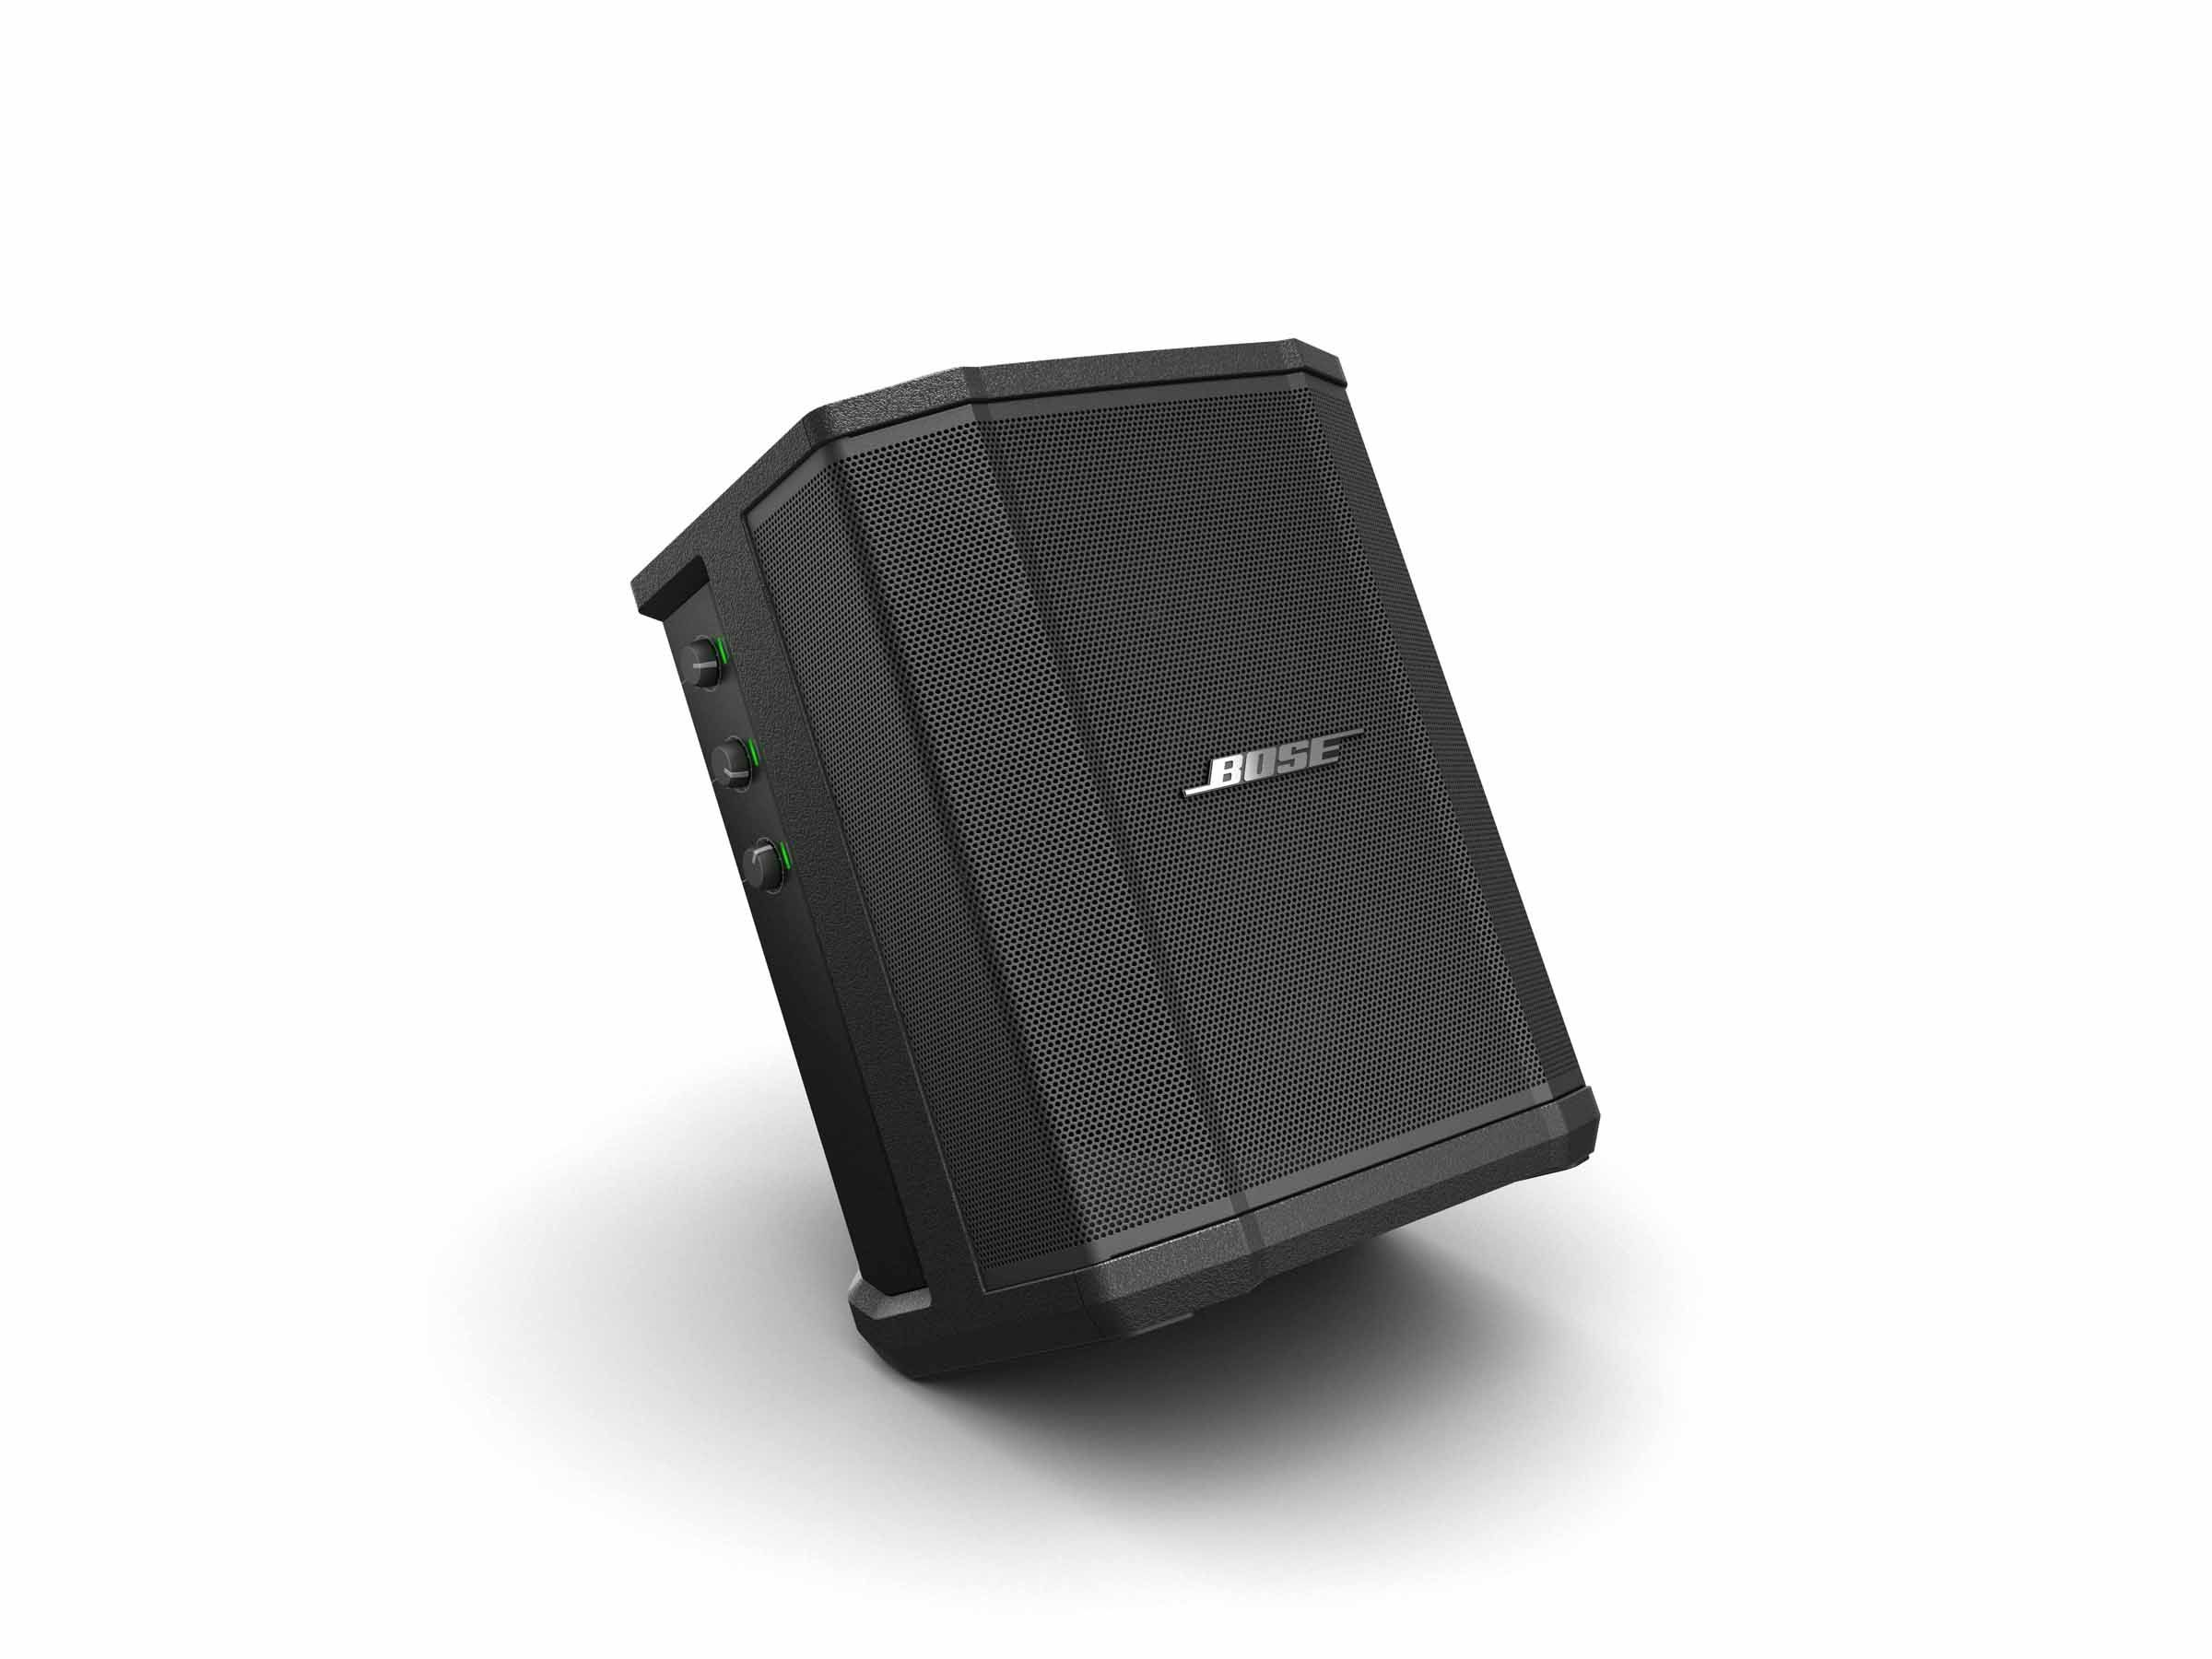 Bose Debuts S1 Pro Pa System Perfect For Ceremony Sound Bluetooth Speakers Portable Bose Speaker System